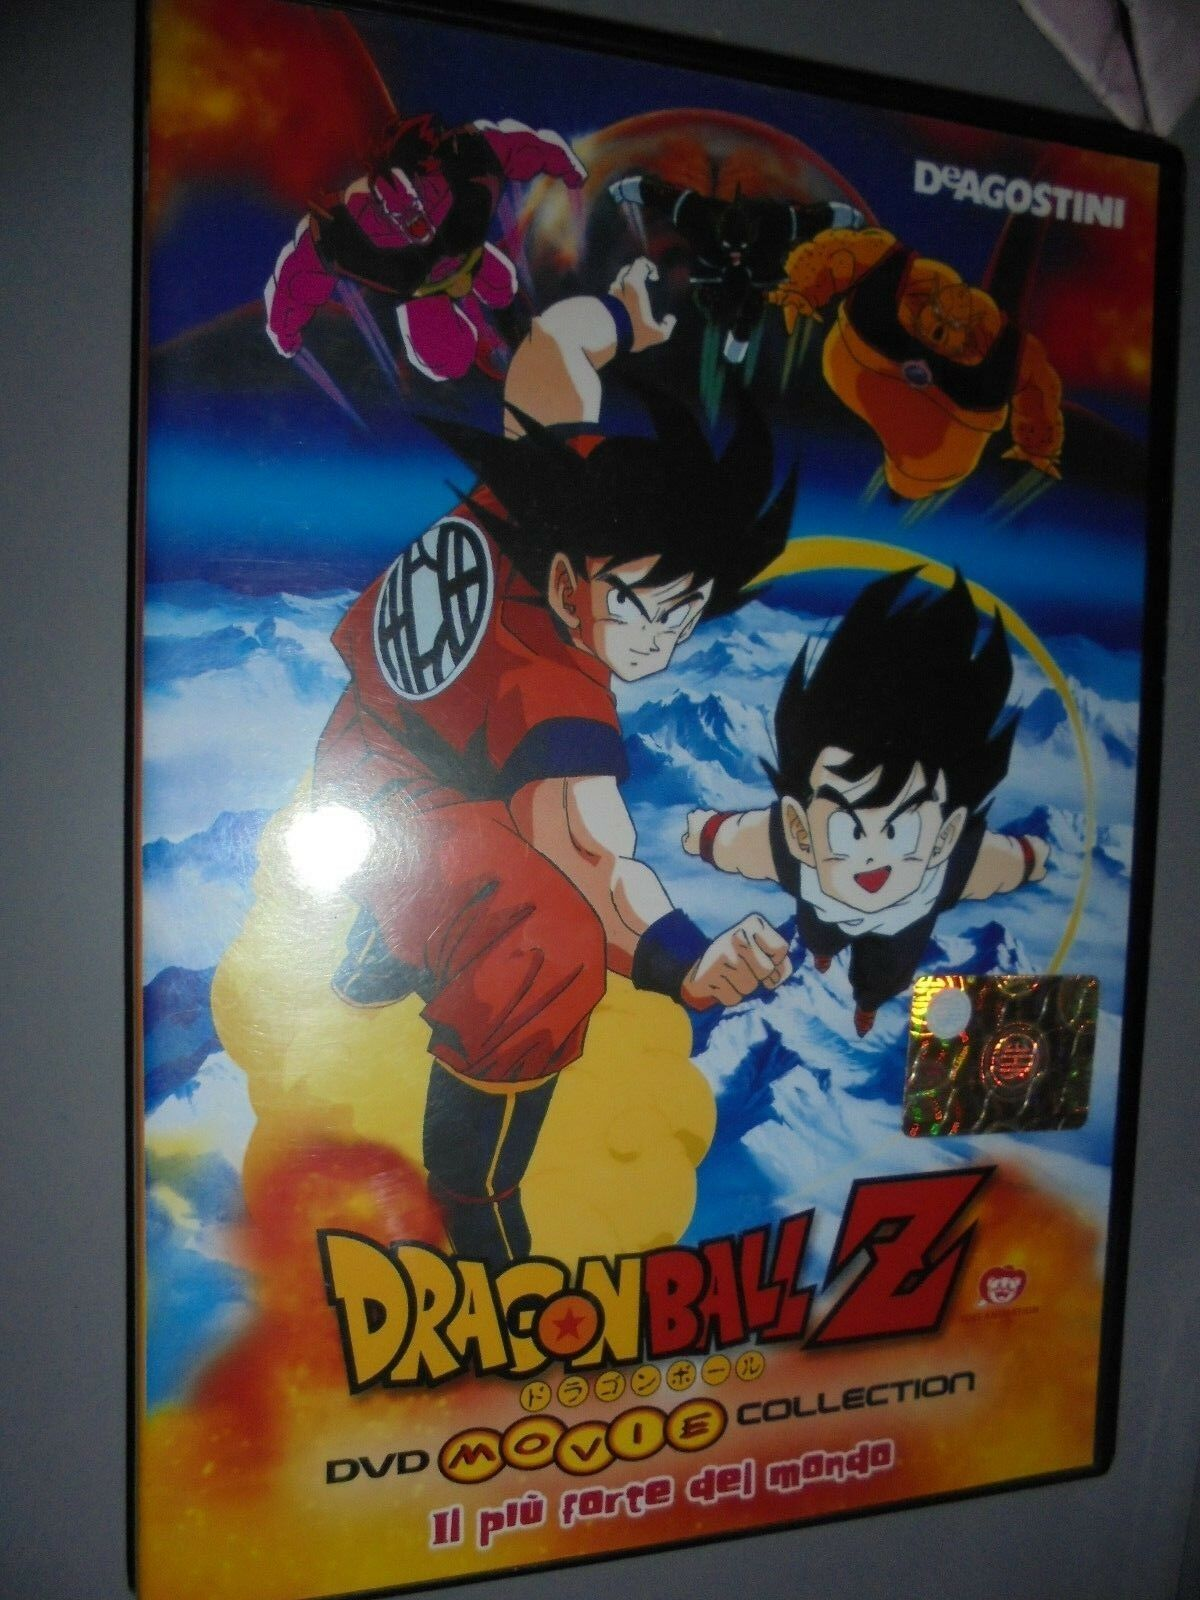 Galleria fotografica DVD DRAGONBALL Z IL PIU' FORTE DEL MONDO MOVIE COLLECTION DEAGOSTINI